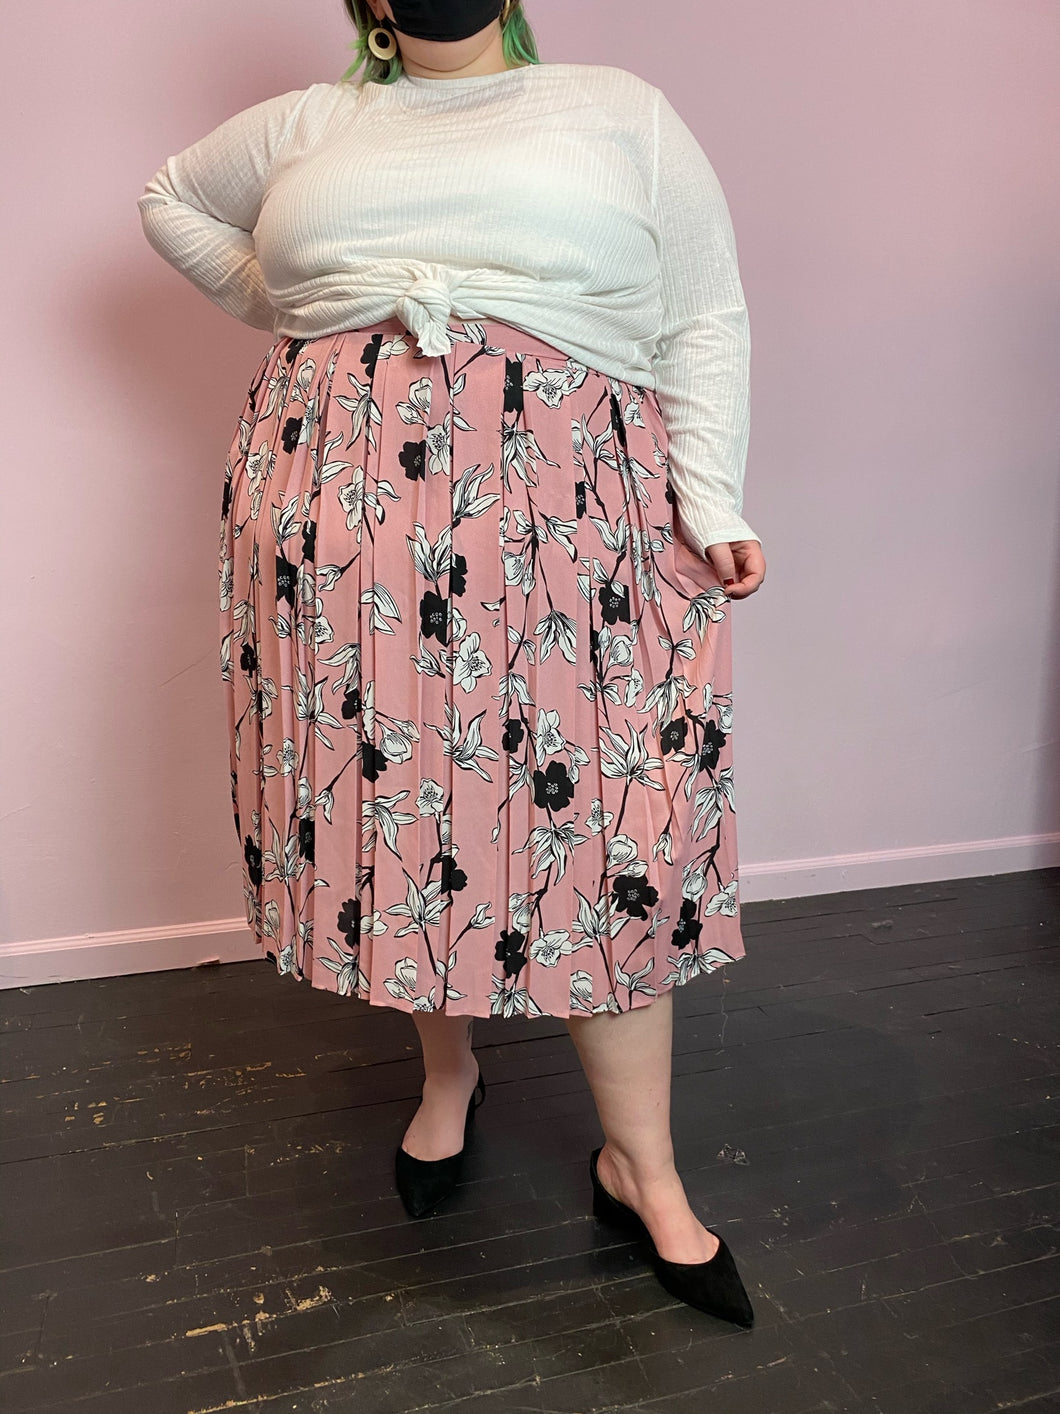 Baby Pink, Black, and White Floral Who What Wear Pleated Maxi Skirt, Size 26